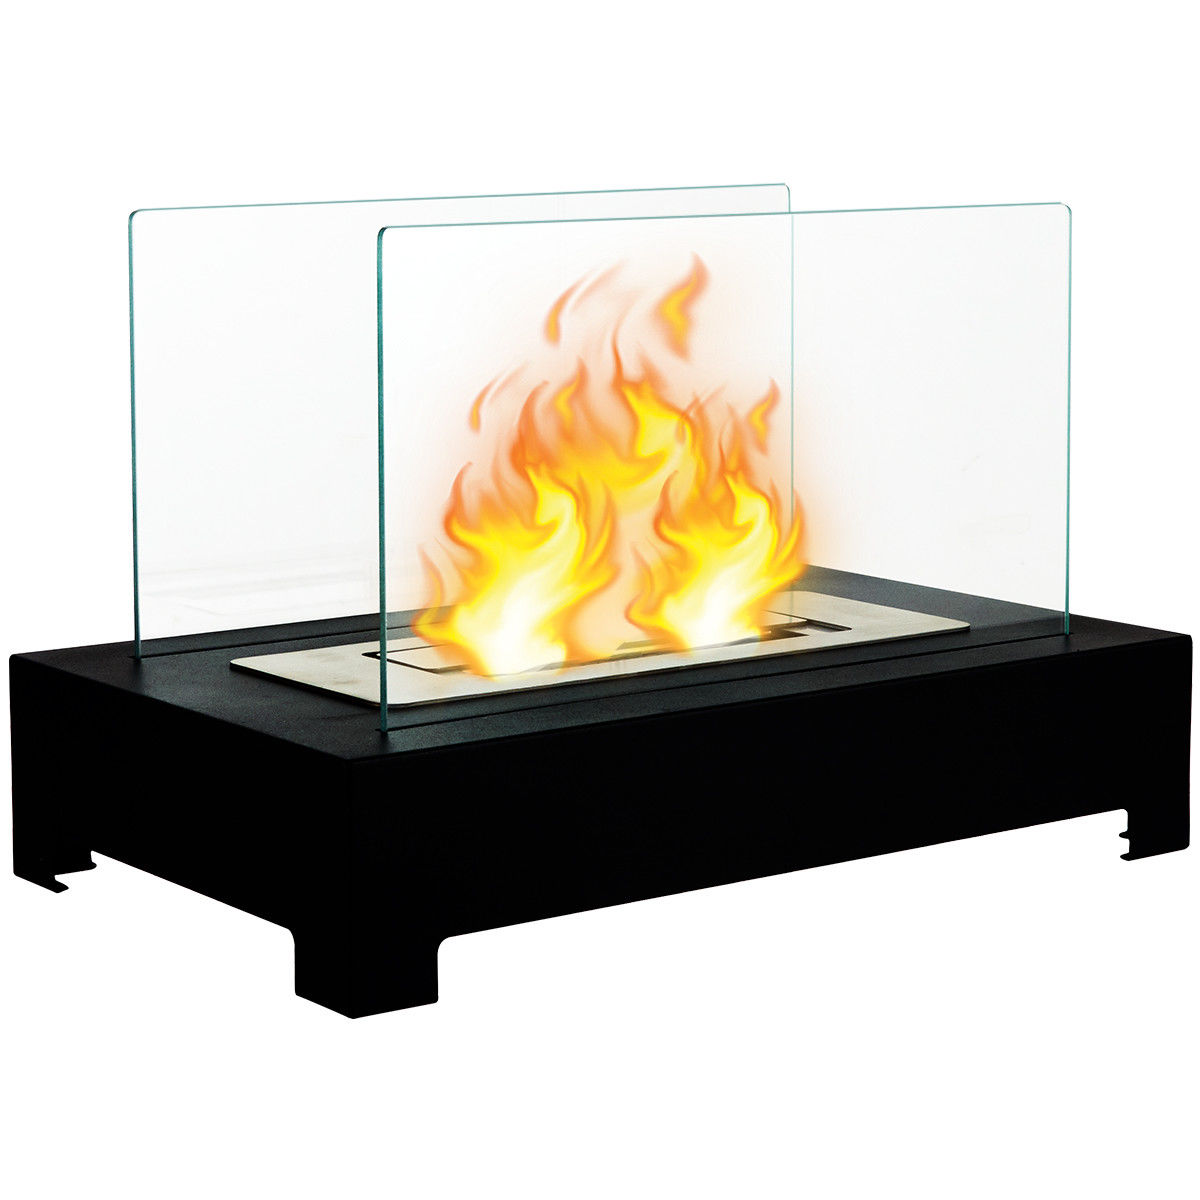 Ethanol Fireplaces Reviews Gymax Tabletop Ventless Bio Ethanol Fireplace Stainless Steel Pedestal Portable